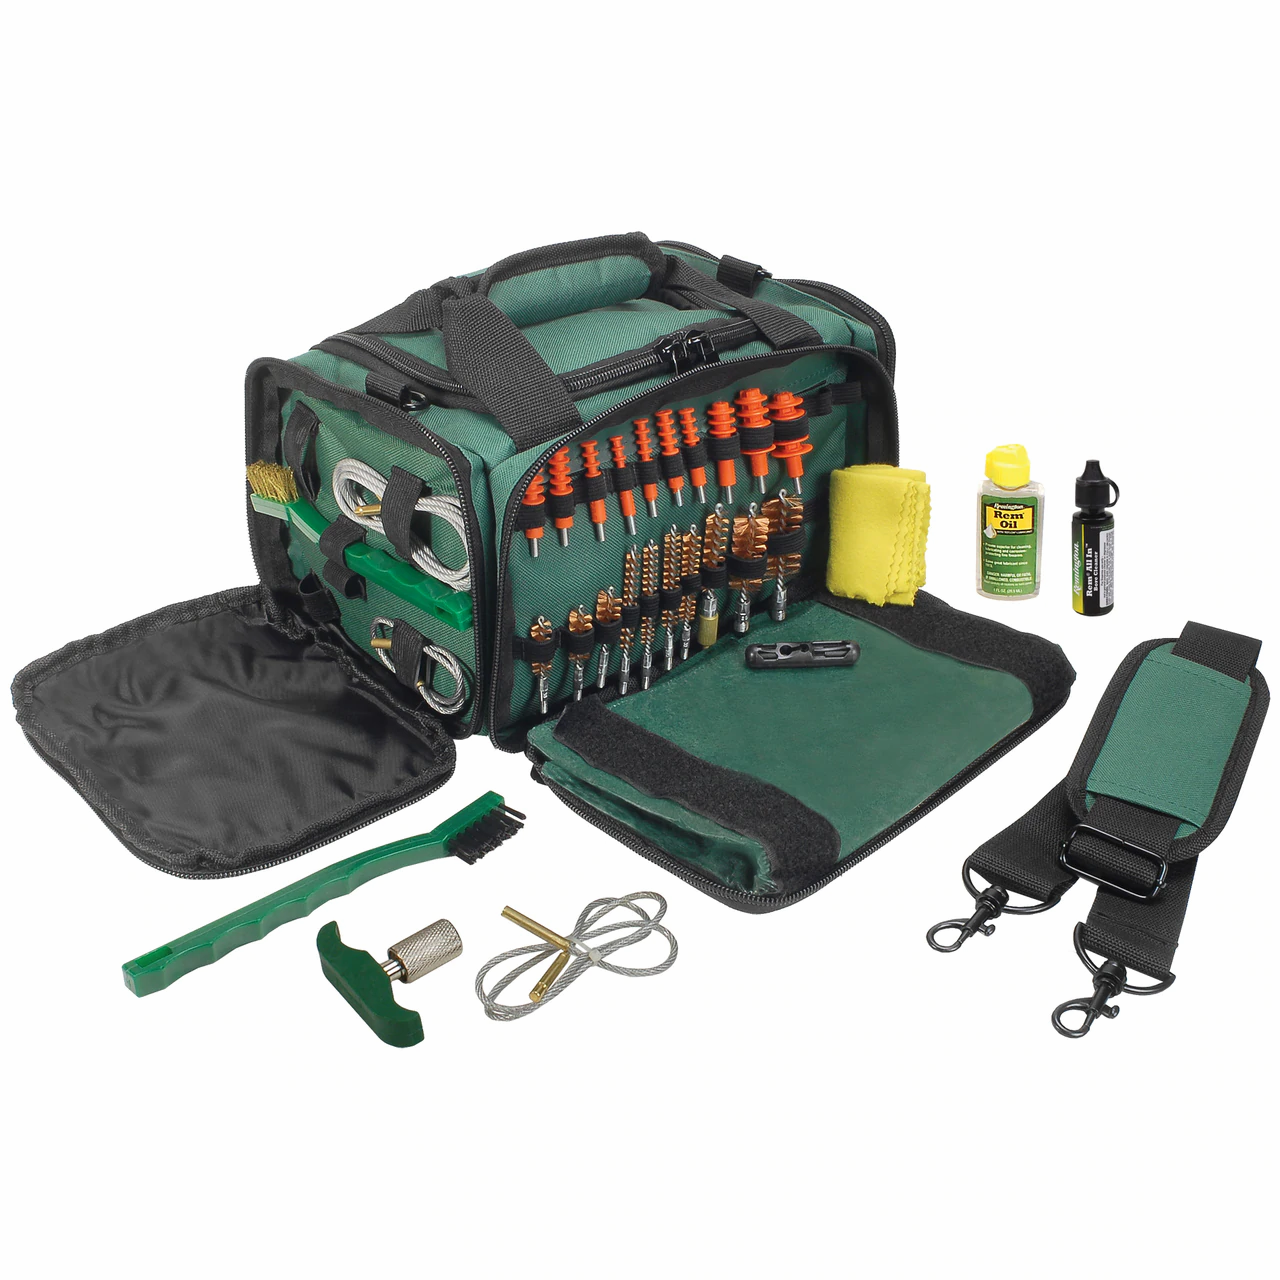 REMINGTON SQUEEG-E CLEANING KIT